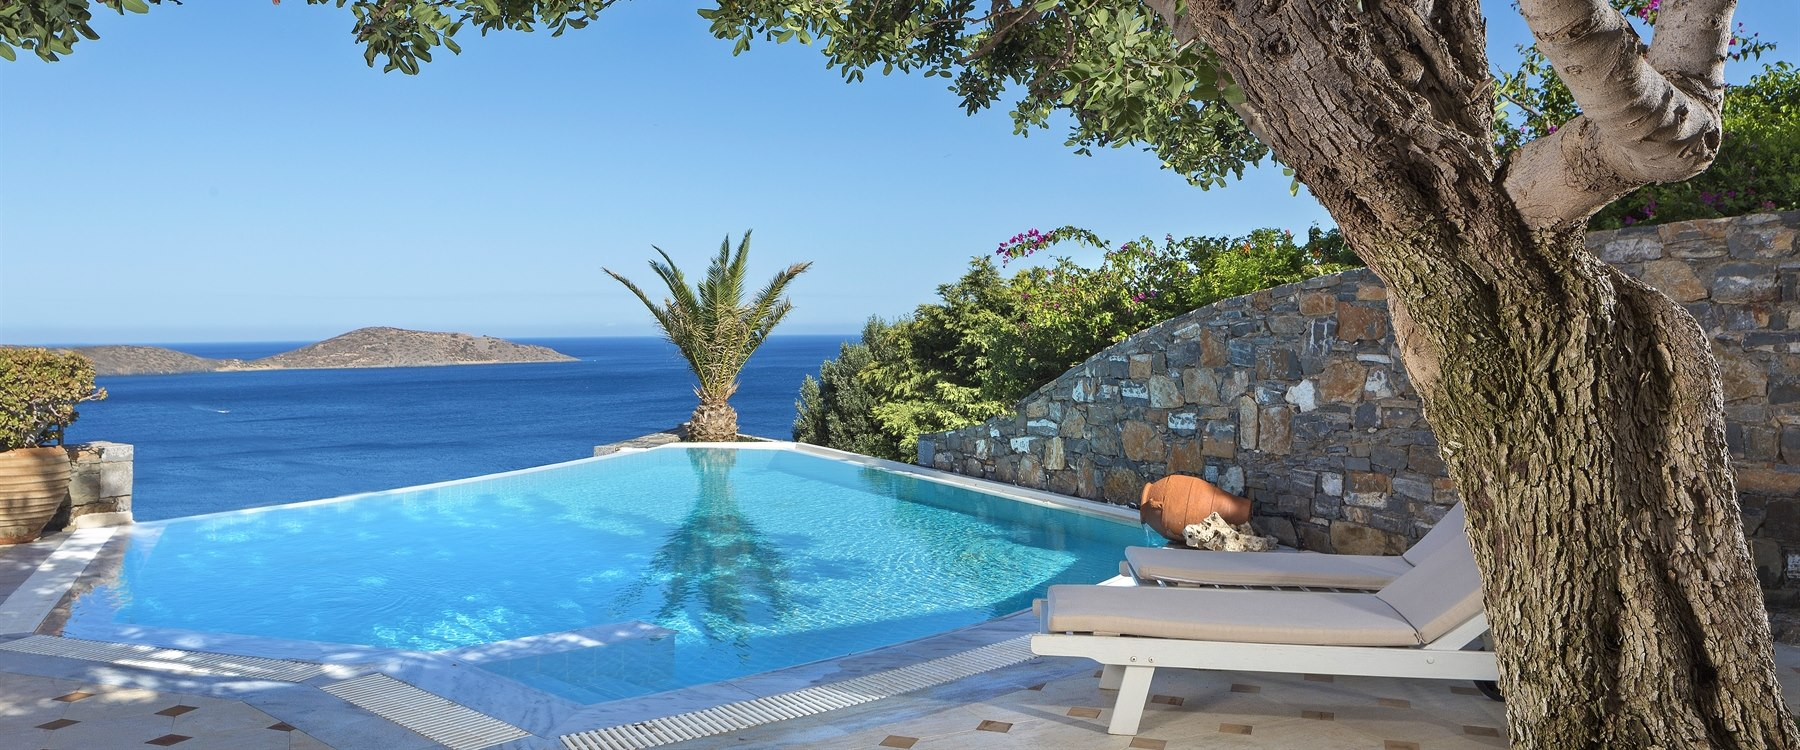 private pool at Elounda Gulf Villas & Suites